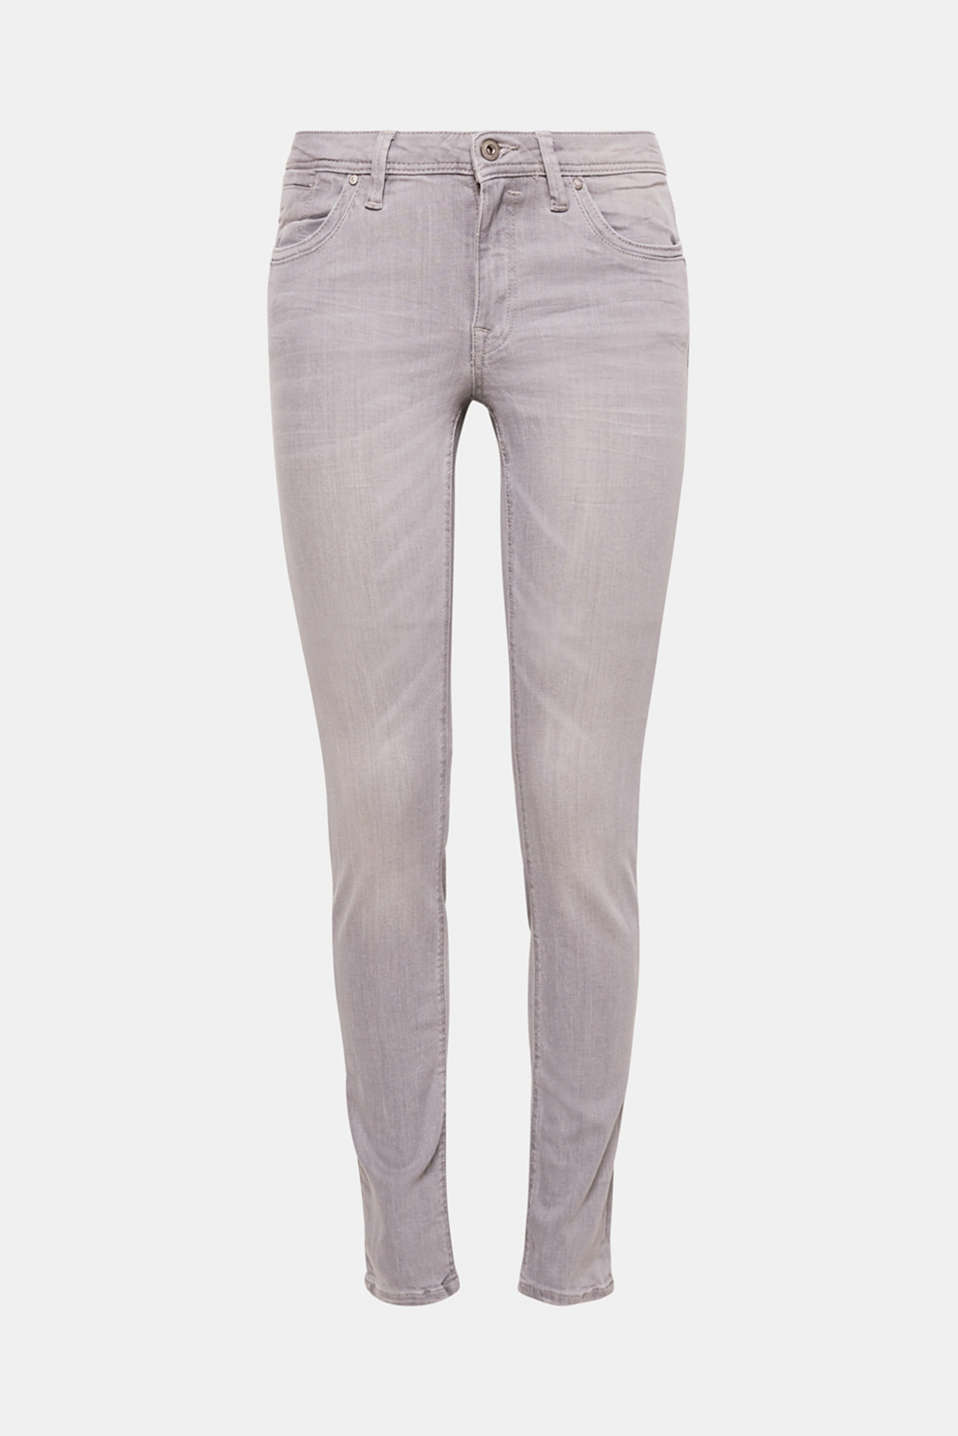 Fashionable, grey overdyed five-pocket jeans in stretchy cotton denim